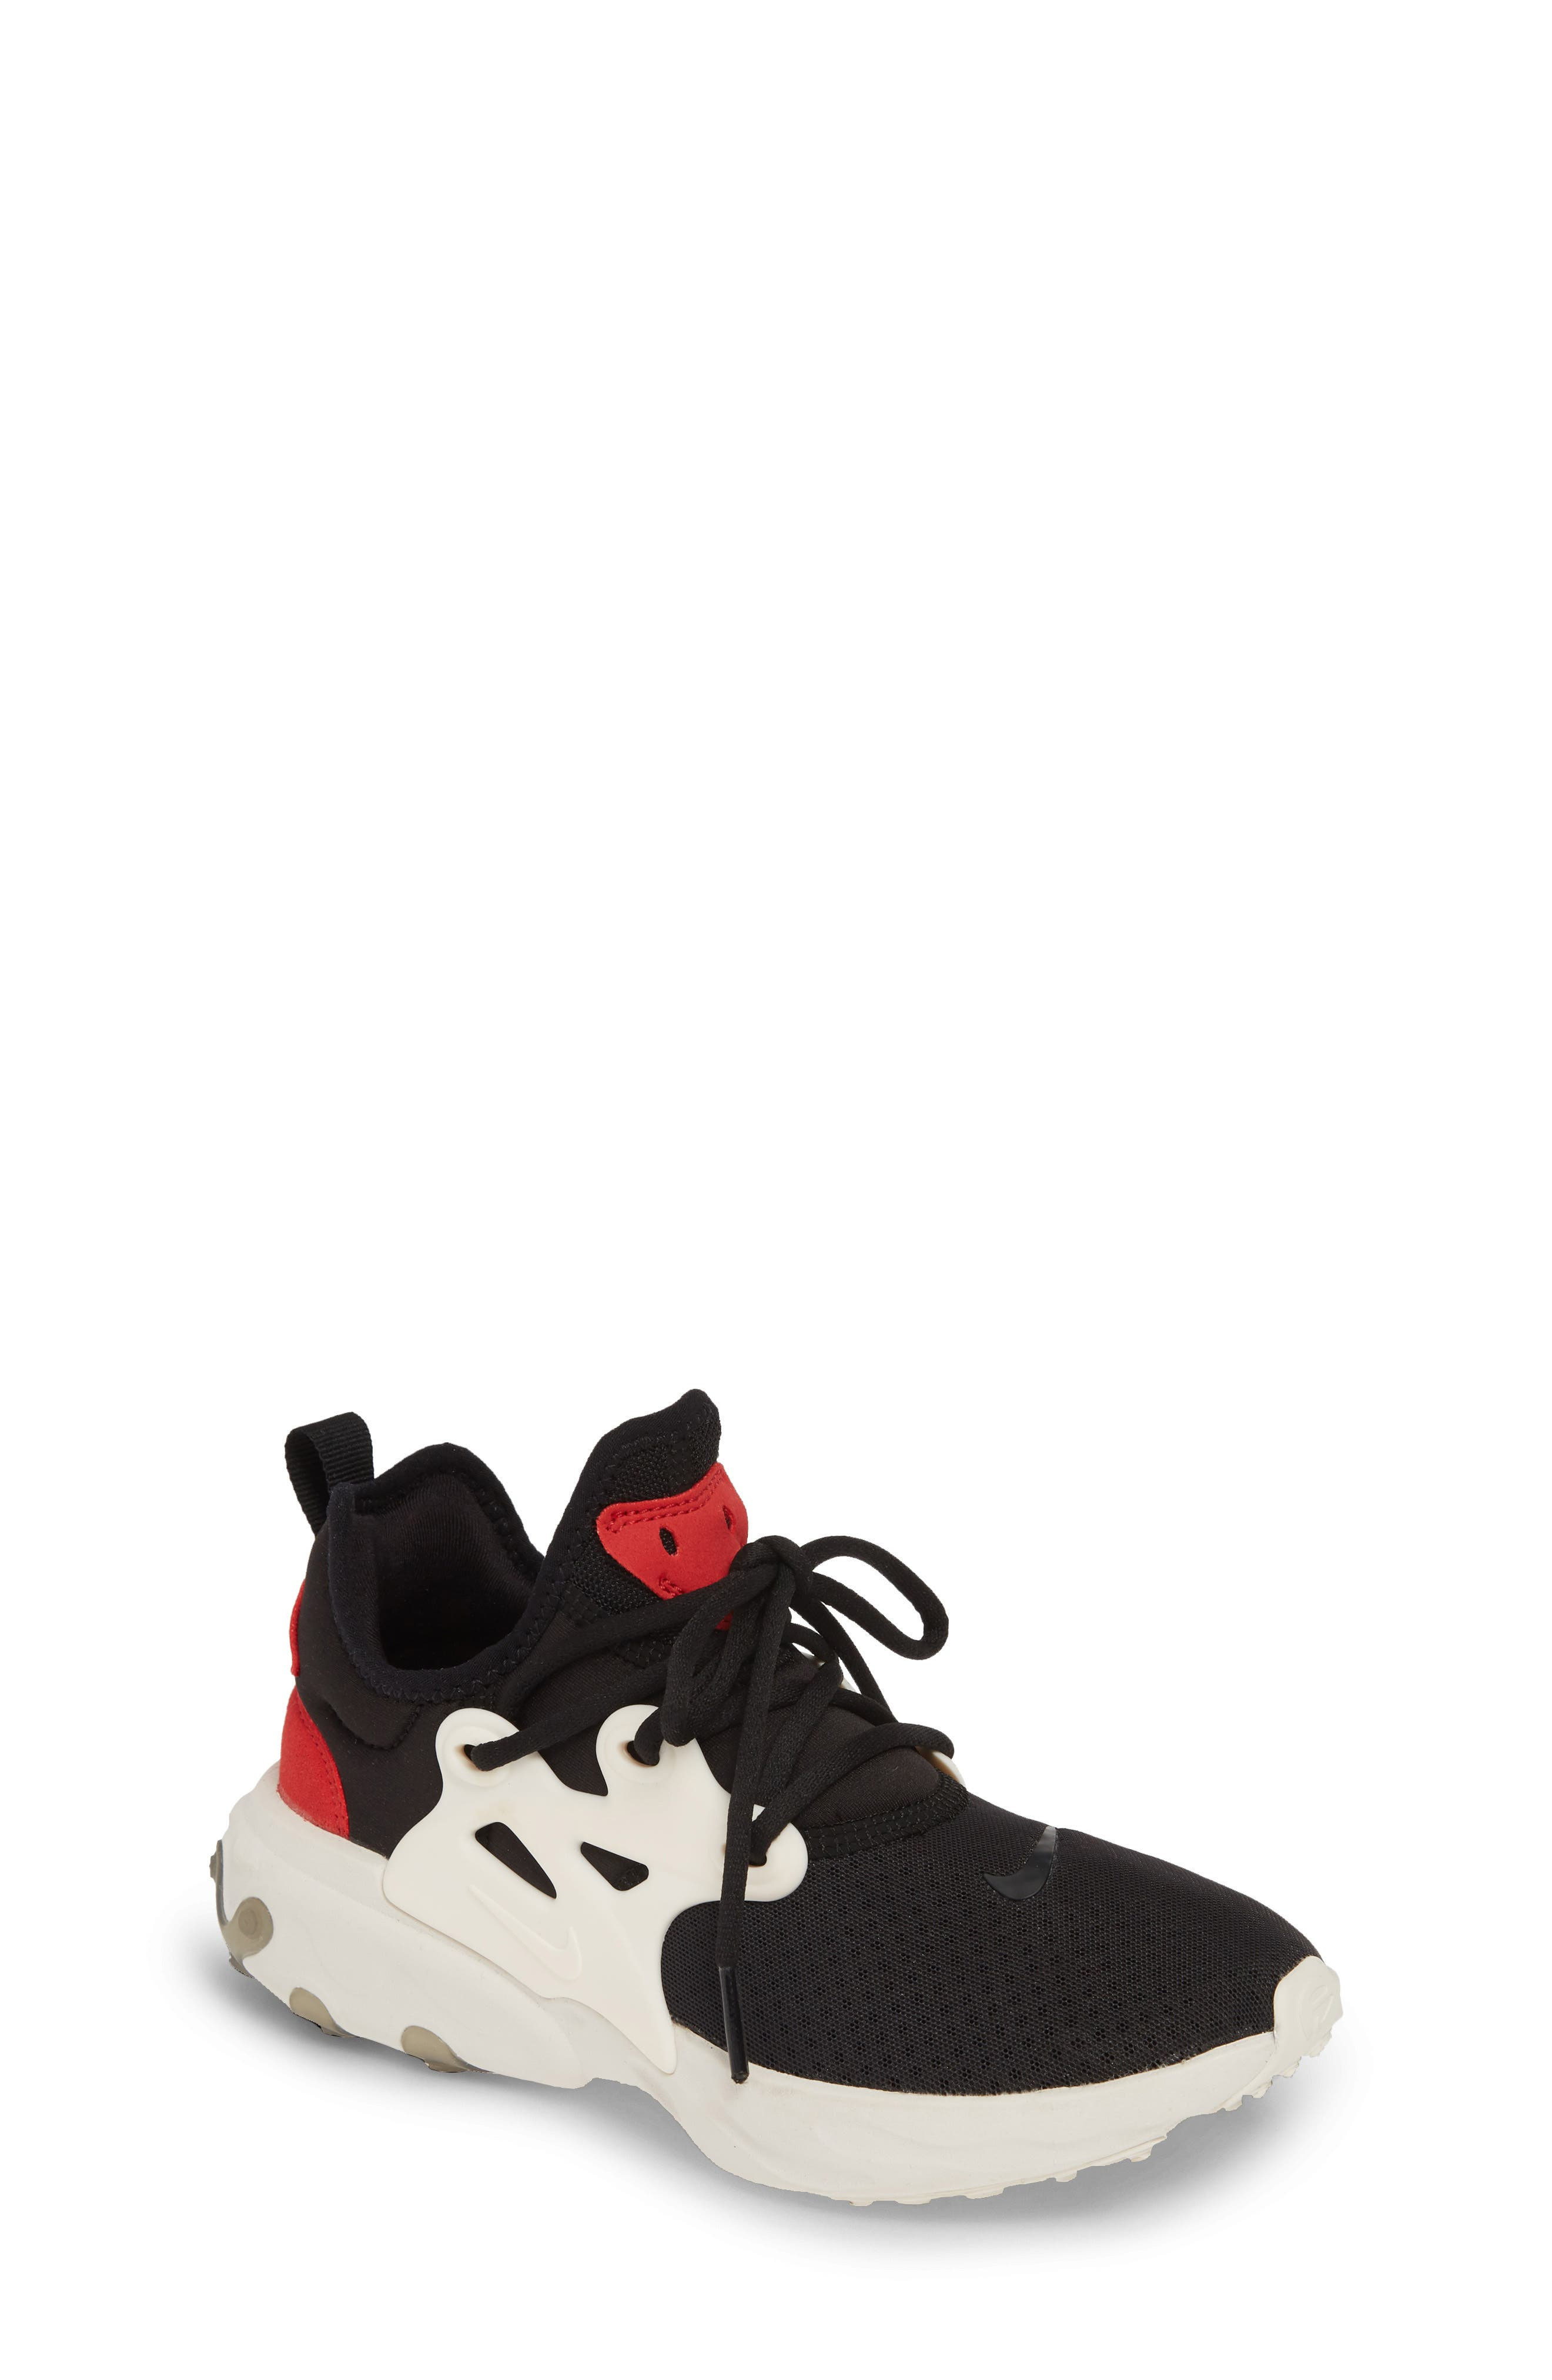 Toddler Nike Presto React Sneaker Size 115 M  Black